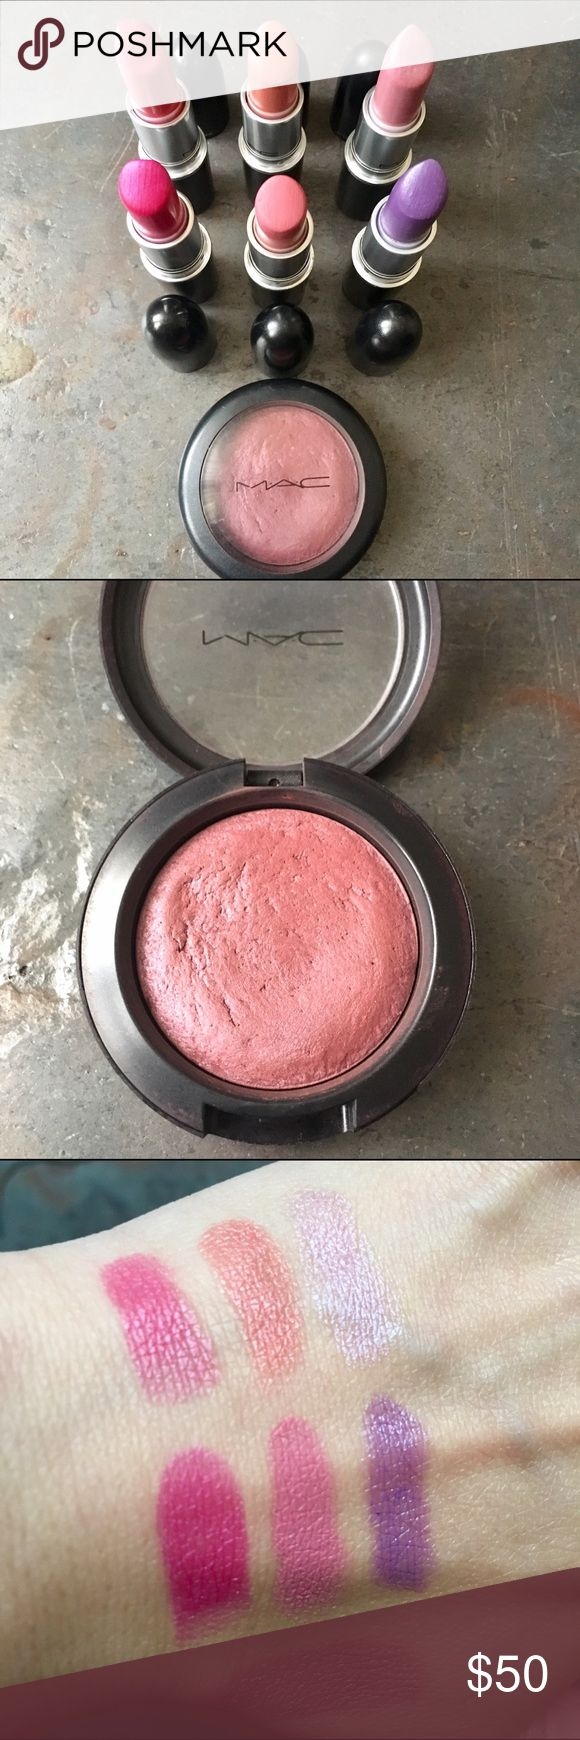 Bundle of 6 MAC Lipsticks and Blush Open to offers - Fun MAC lip colors + mineralized blush in Conjure Up. Blush is lightly used, lipsticks are light to medium used conditions as seen in photo. All items have been cleaned/sanitized. Selling because I no longer wear bright lips. Swatches of lips in order according to first photo including blush at bottom. Top left to right: Amplified - Chatterbox, Cremesheen - Ravishing, Glazed - Pervette. Bottom left to right: Amplified - Show Orchid, Matte…